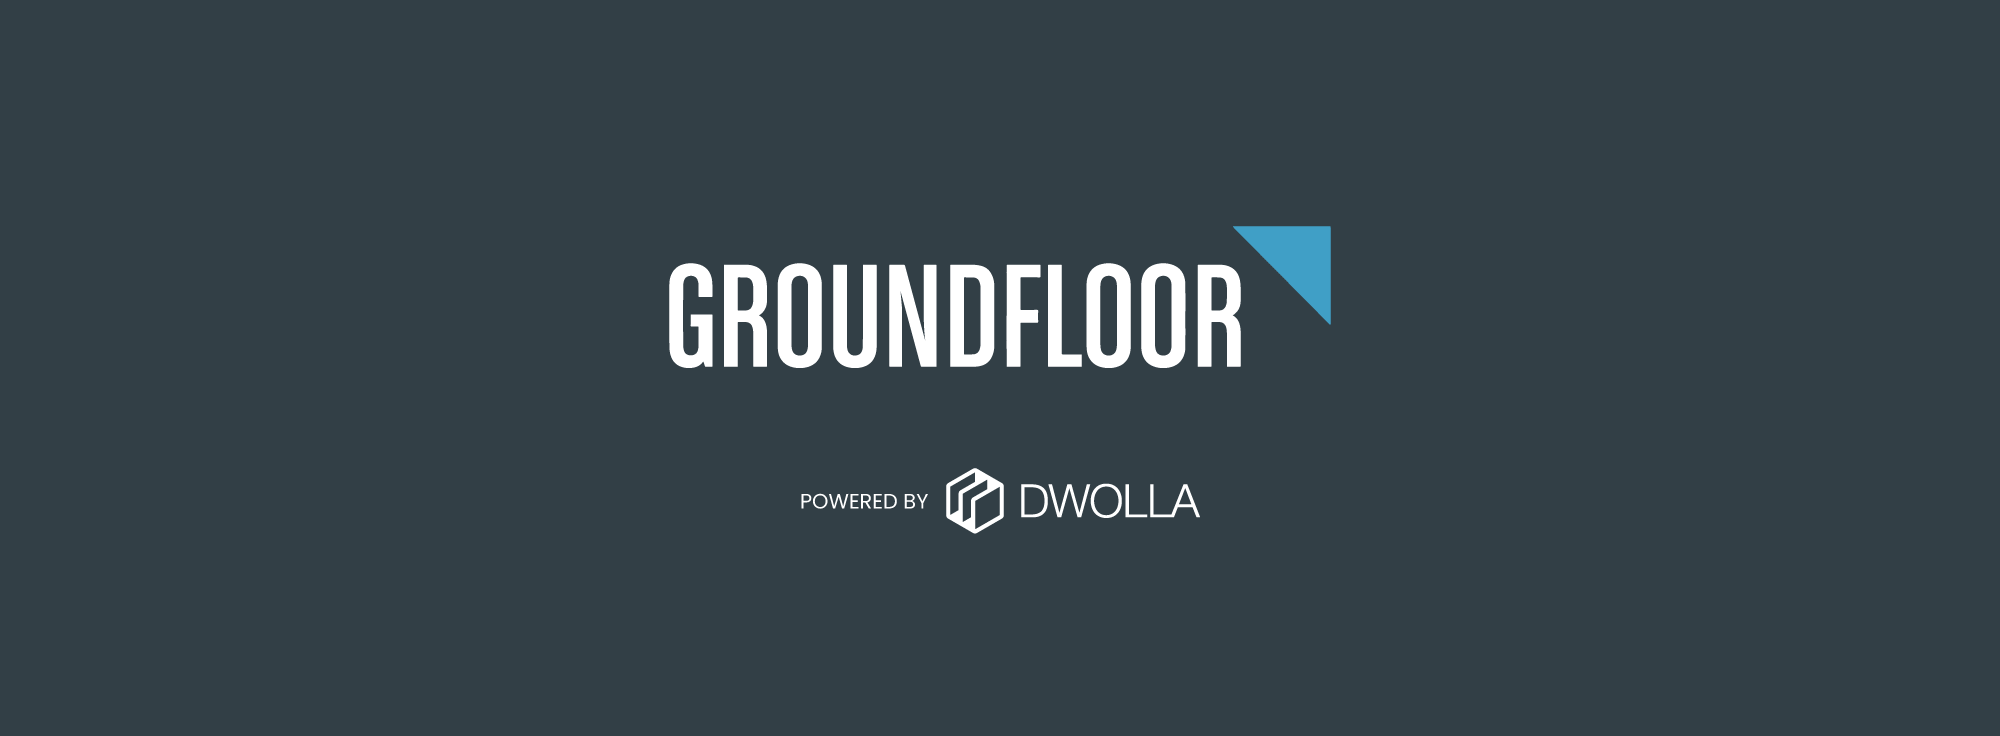 dwolla powers groundfloor